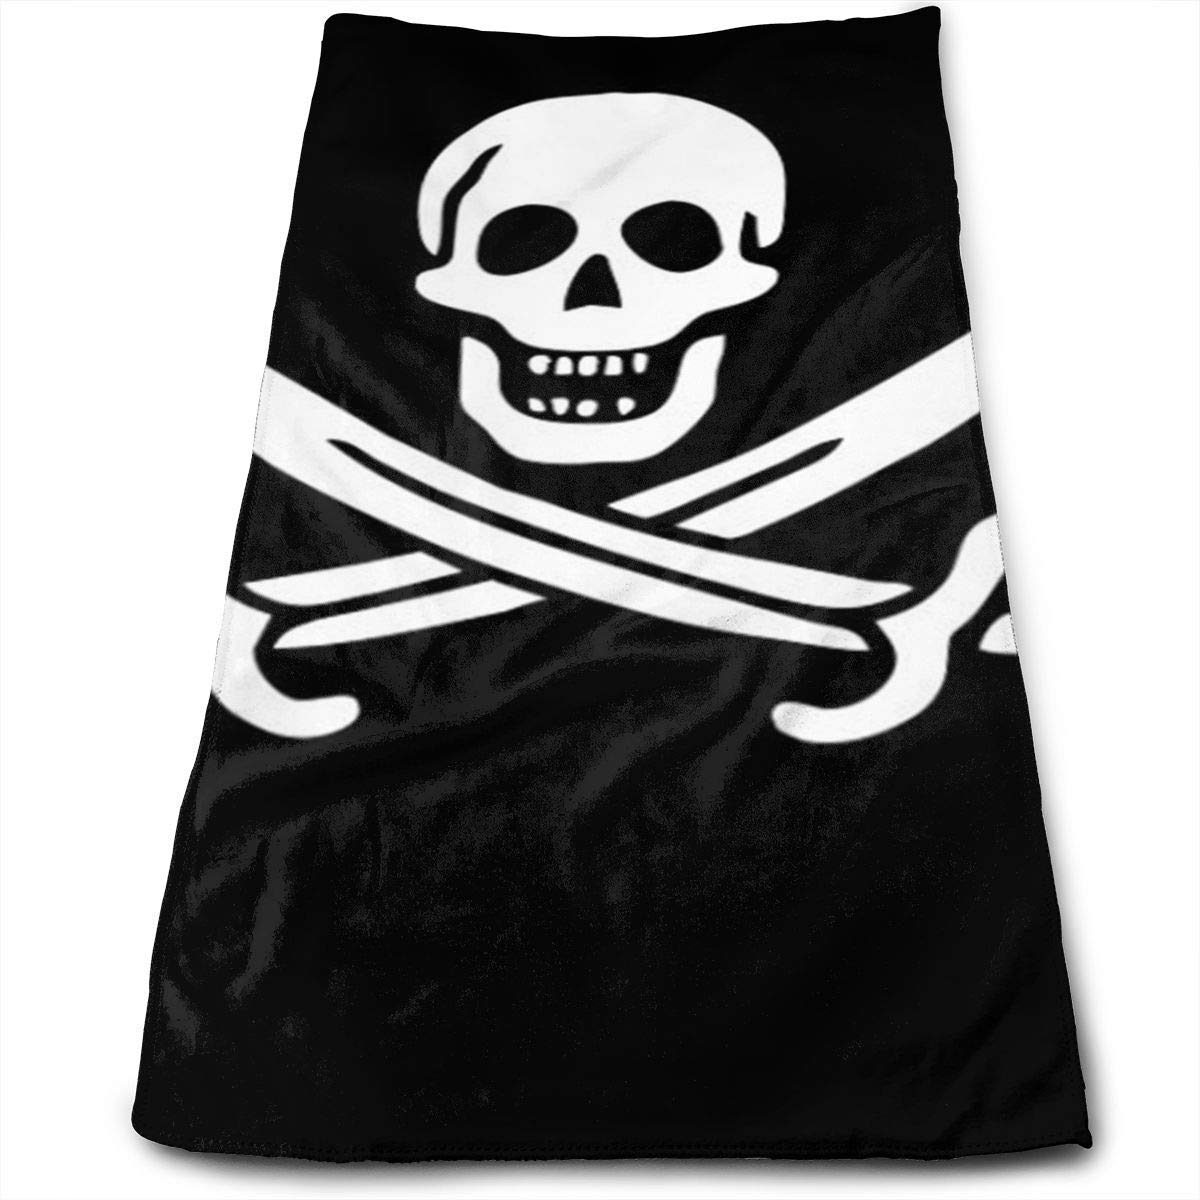 Danger Pirate.jpg Multi-Purpose Microfiber Towel Ultra Compact Super Absorbent and Fast Drying Sports Towel Travel Towel Beach Towel Perfect for Camping, Gym, Swimming. X-Large